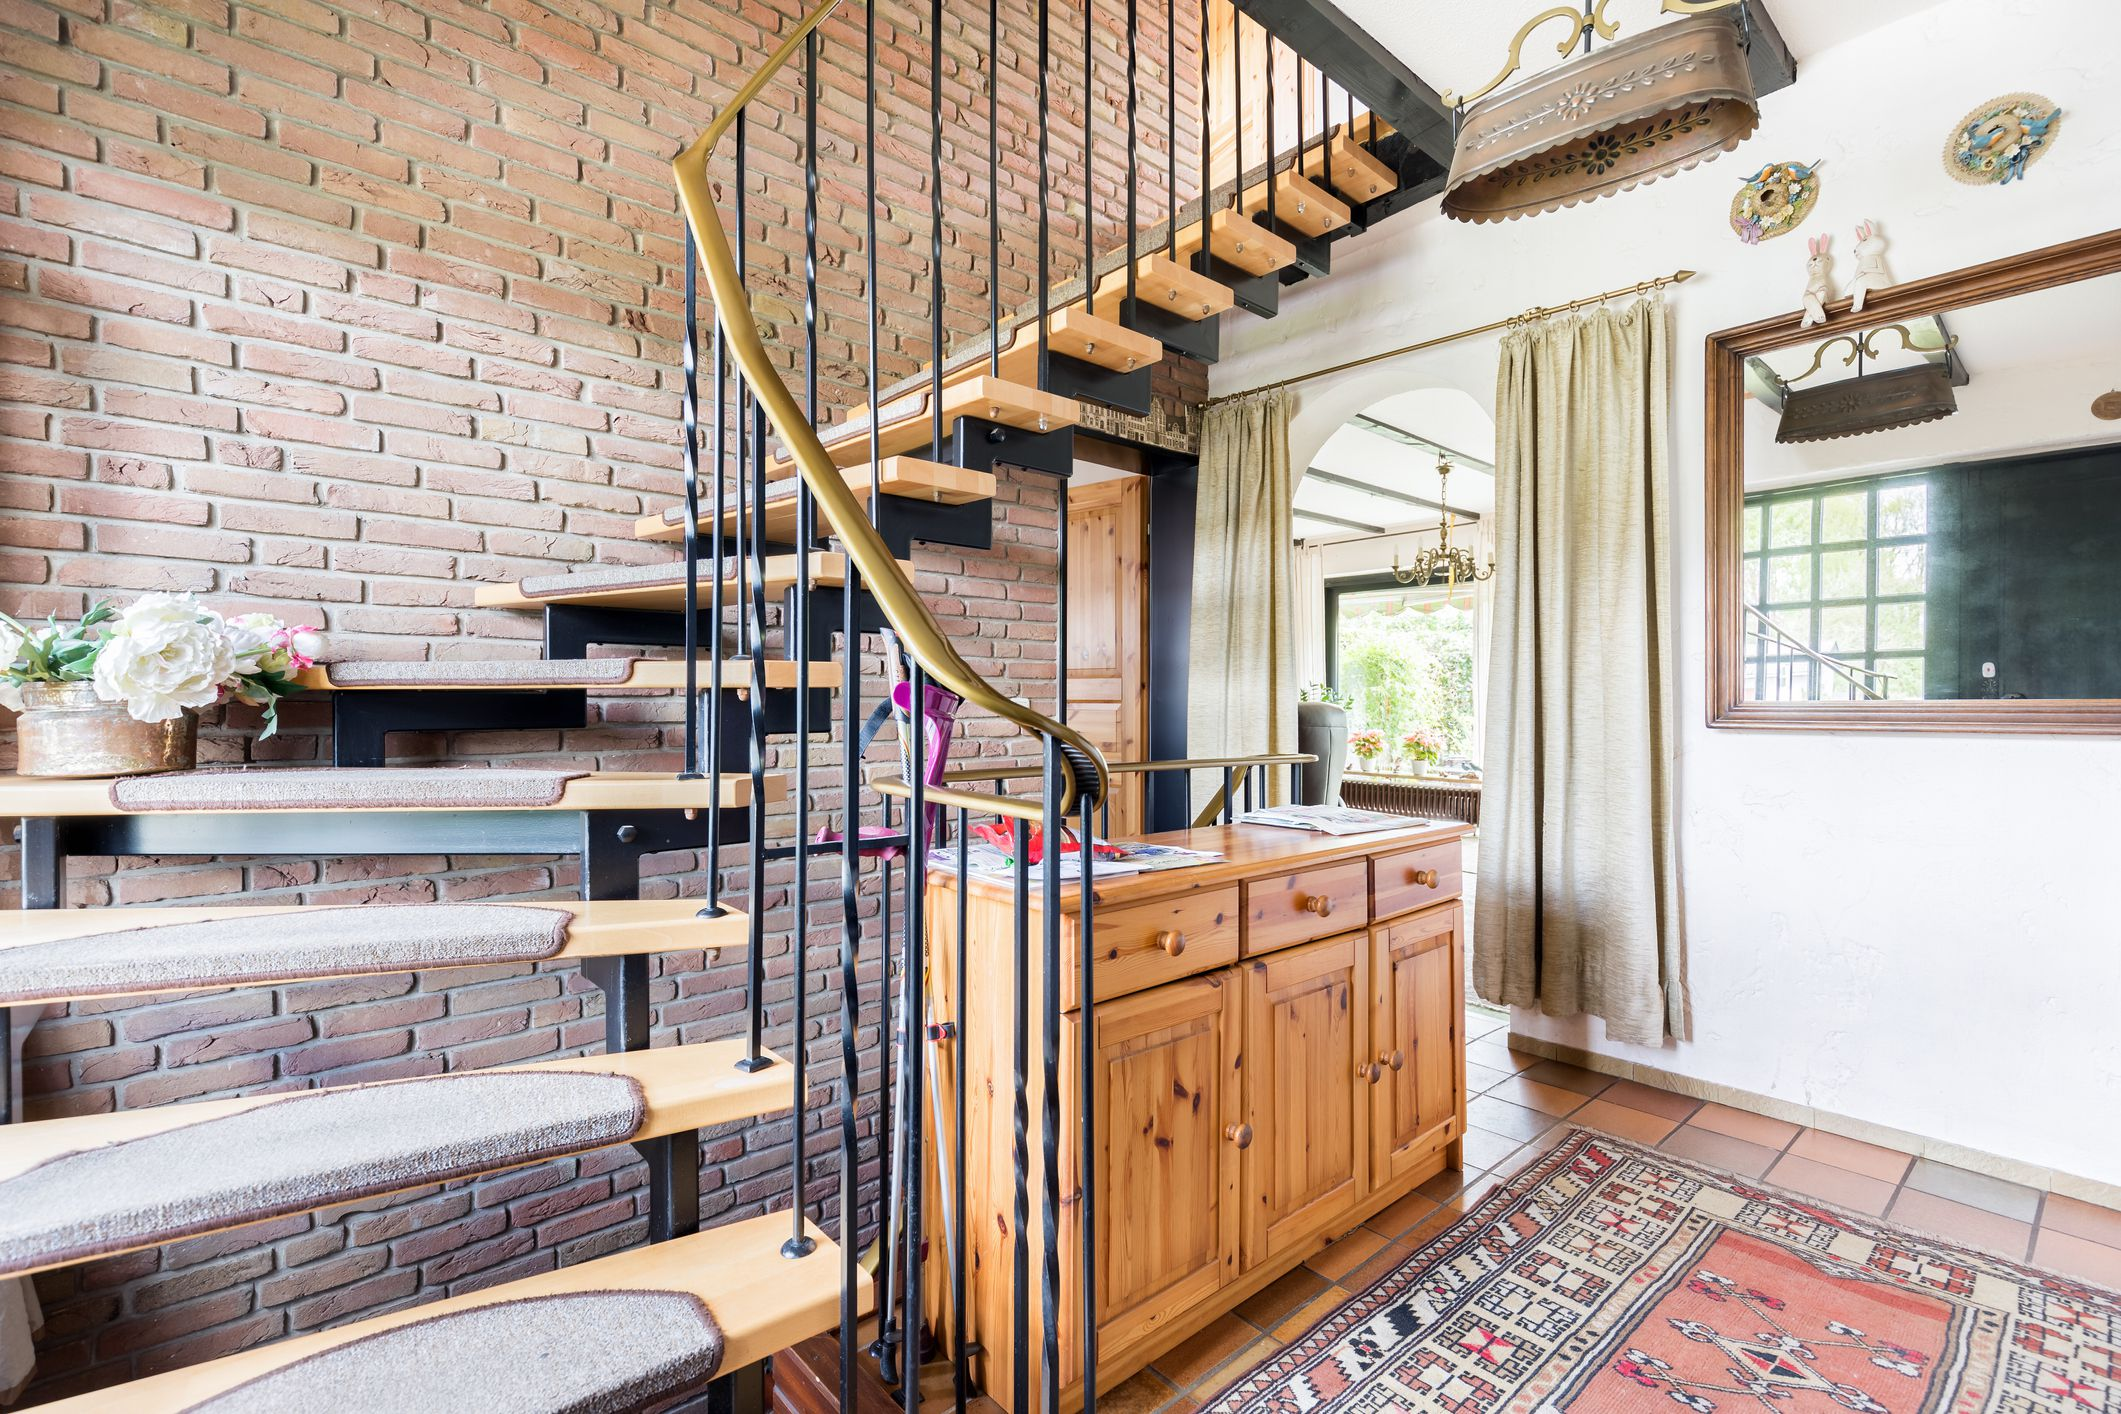 interior stair railing designs ideas and decors most.htm 4 decorative ways to dress up a stairway  4 decorative ways to dress up a stairway